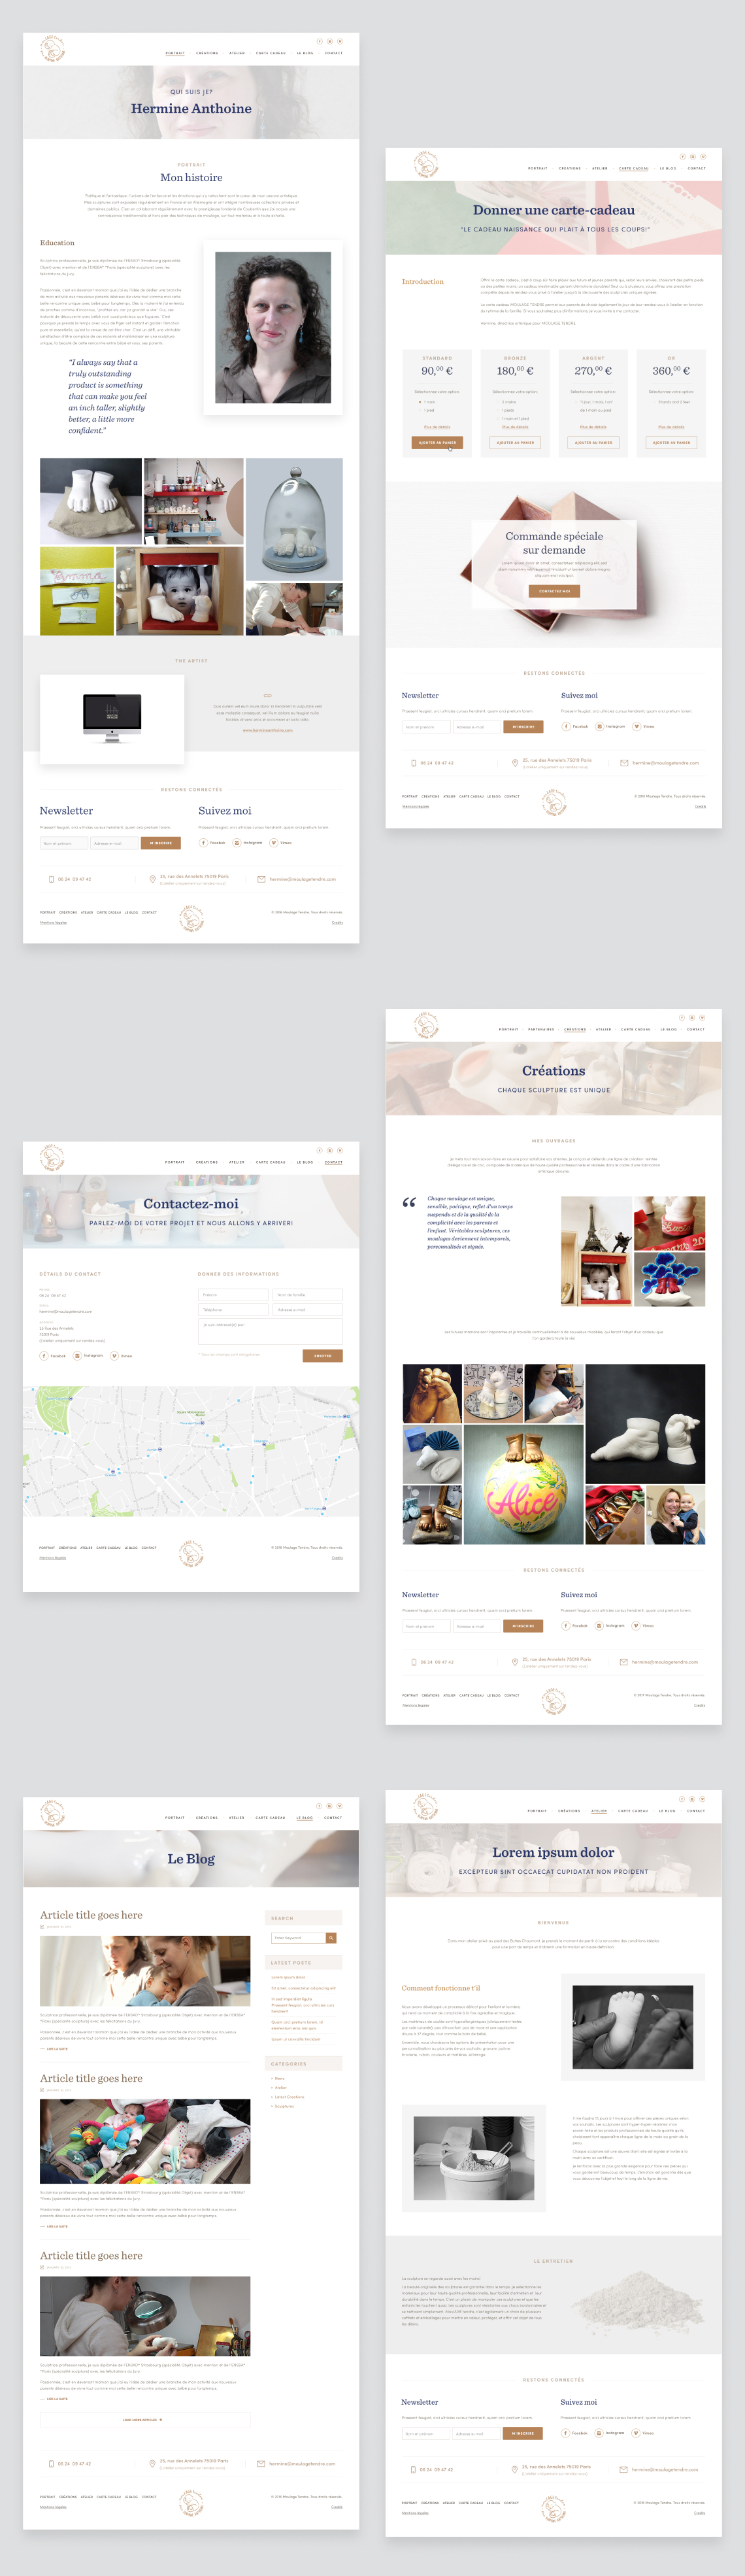 Moulage Tendre - internal pages, business website for Hermine Anthoine